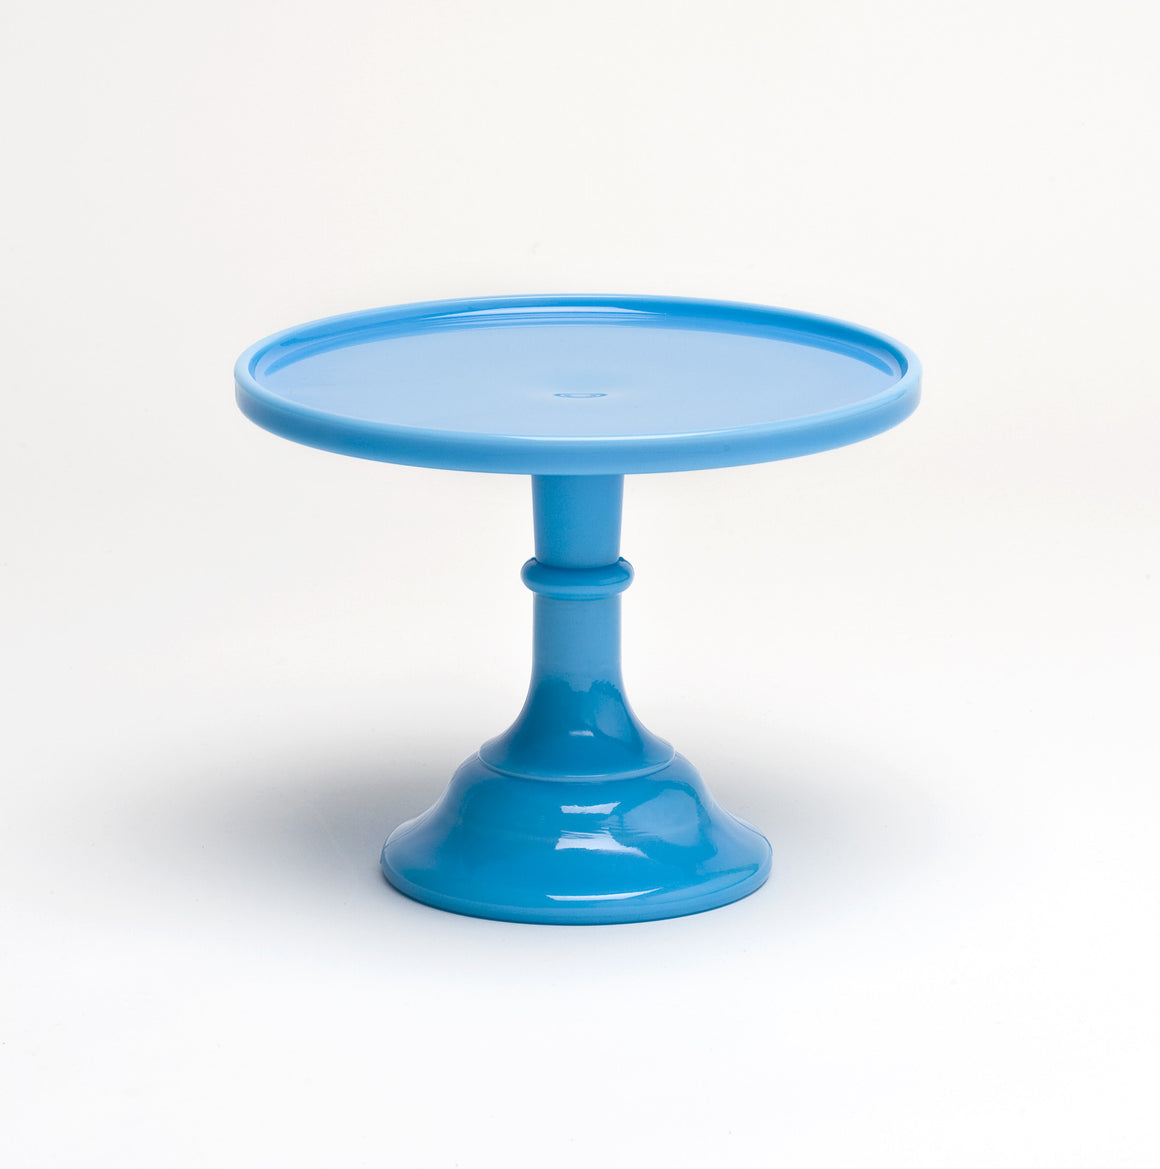 Milk Glass Cake Stand - Blue 9""